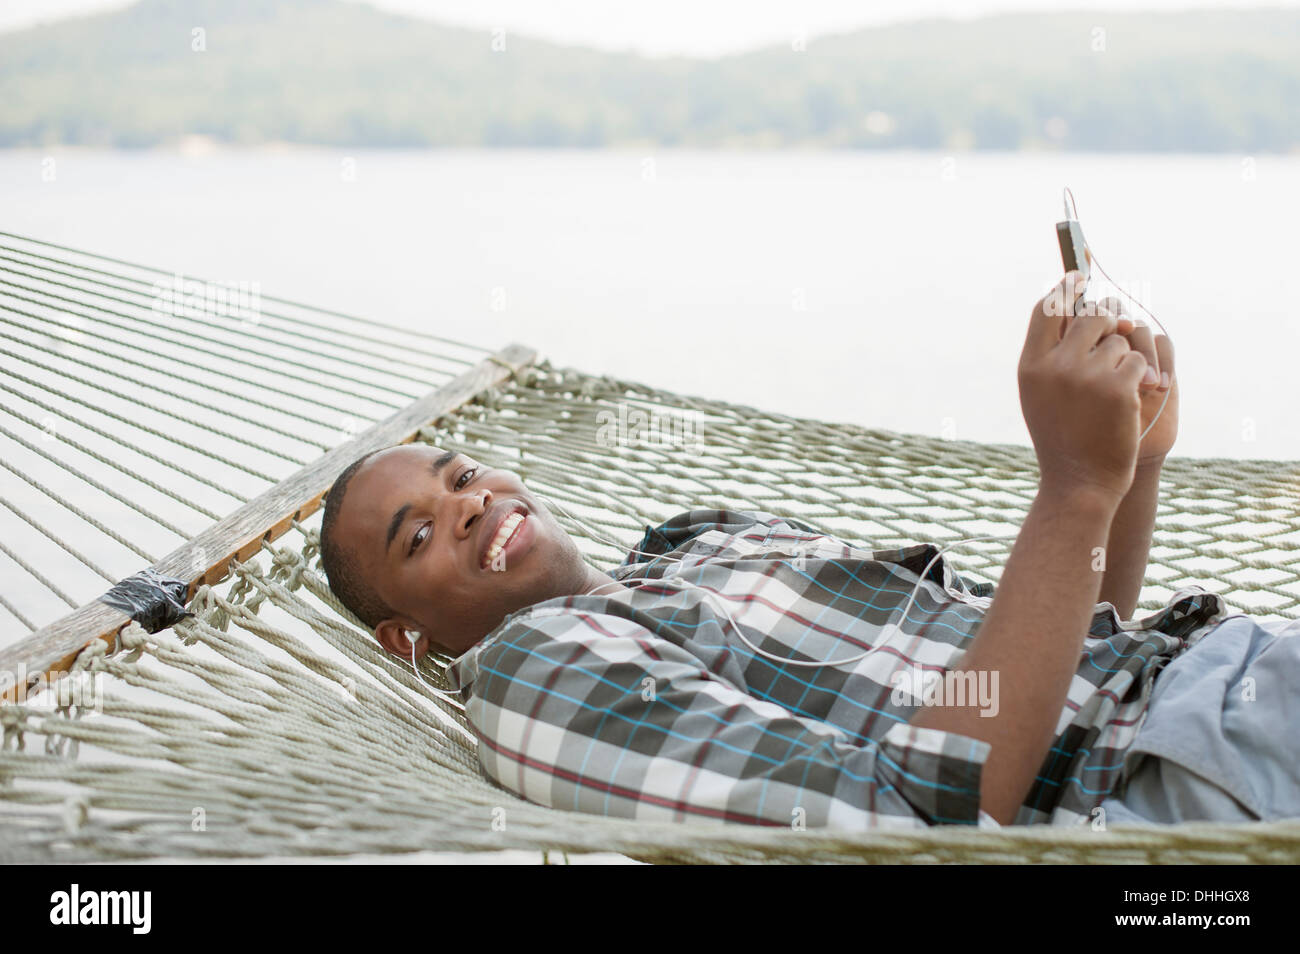 Young man lying on hammock listening to music - Stock Image